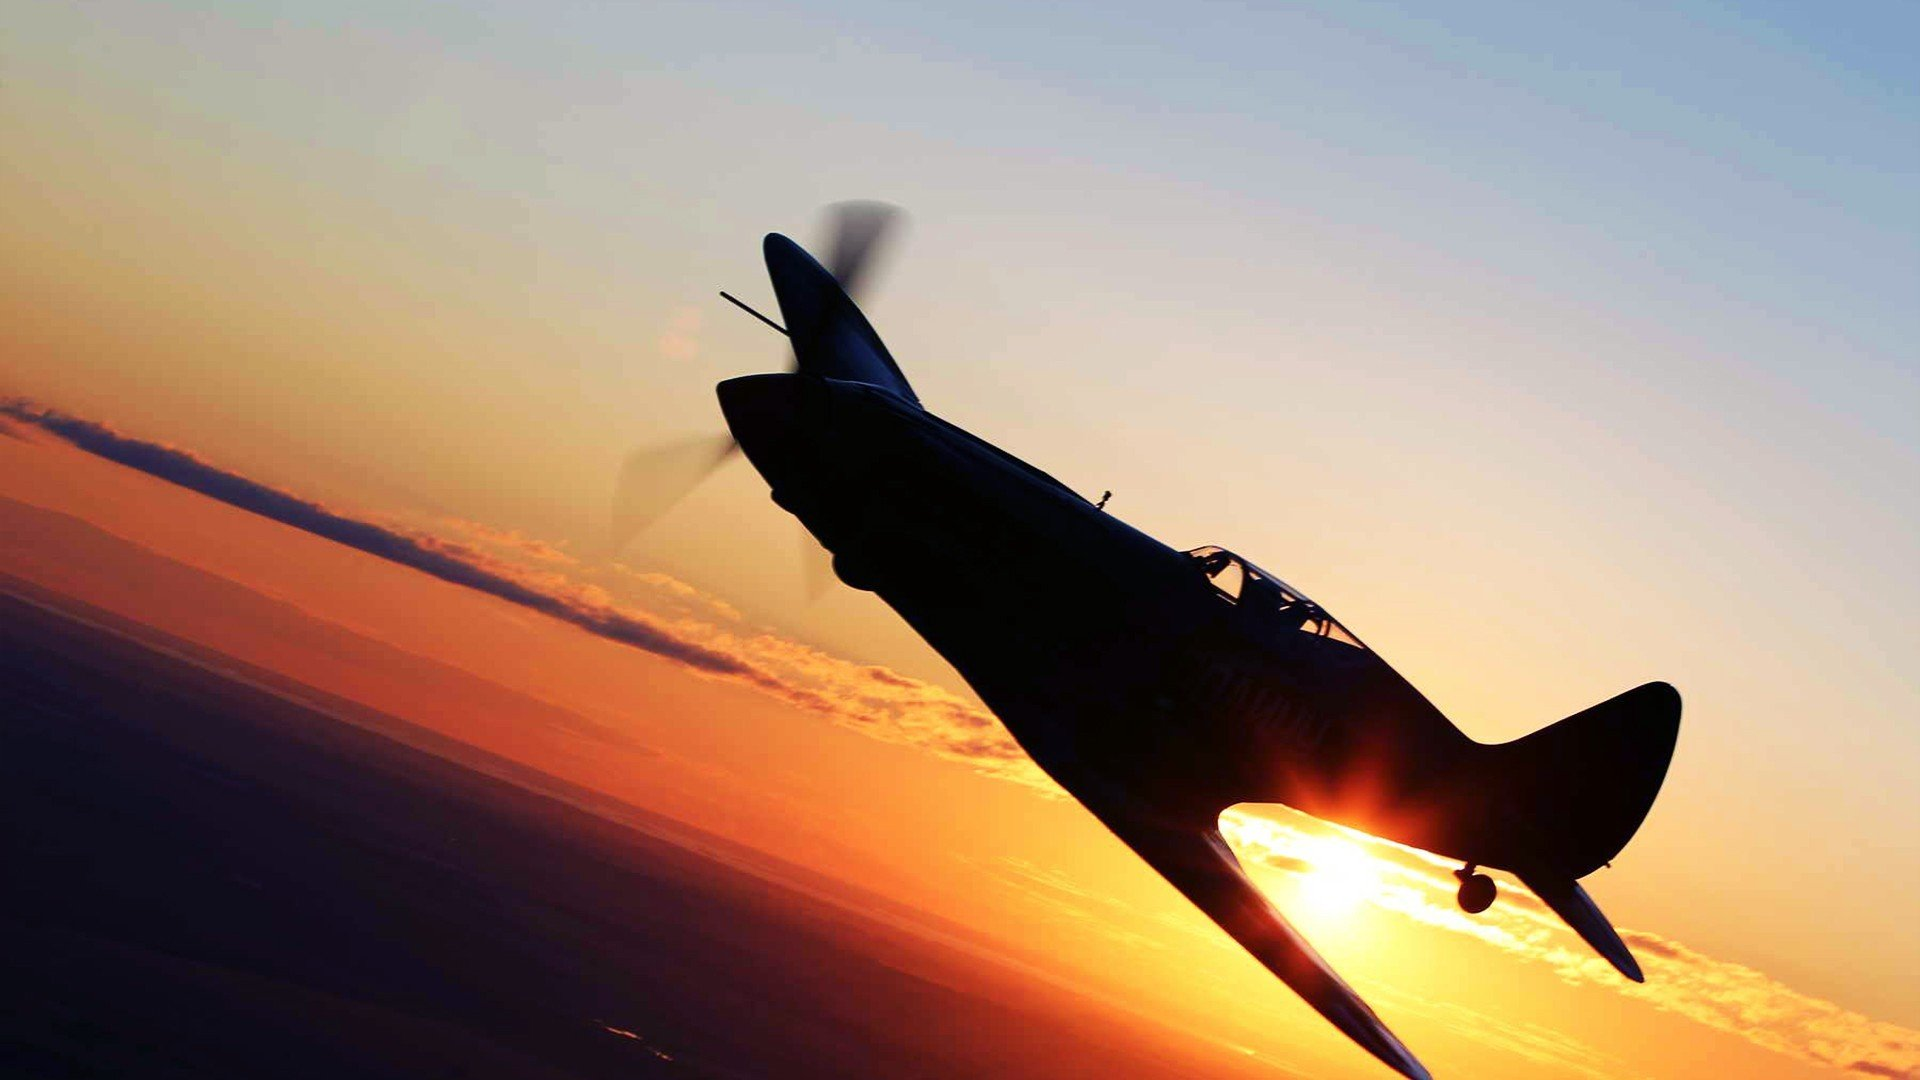 Airplane sunlight silhouette mikoyan mig 3 hd - Aeroplane hd wallpapers for mobile ...